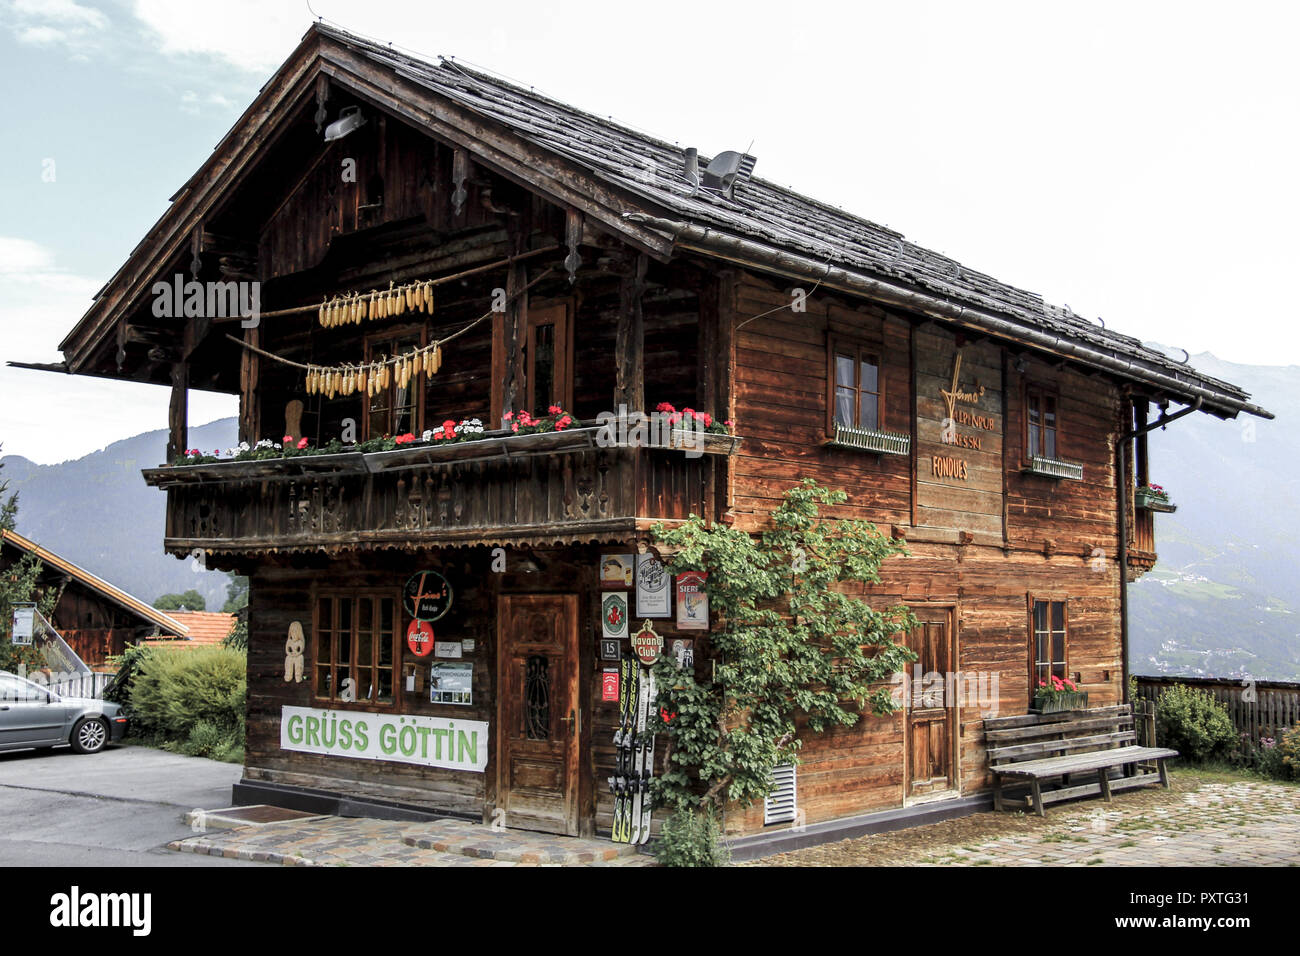 Altes Holzhaus in Ladis, Tirol, Österreich, Old wooden house in Ladis, Tyrol, Austria, ladis, village, center, inn valley, europe, wood, wooden, house - Stock Image